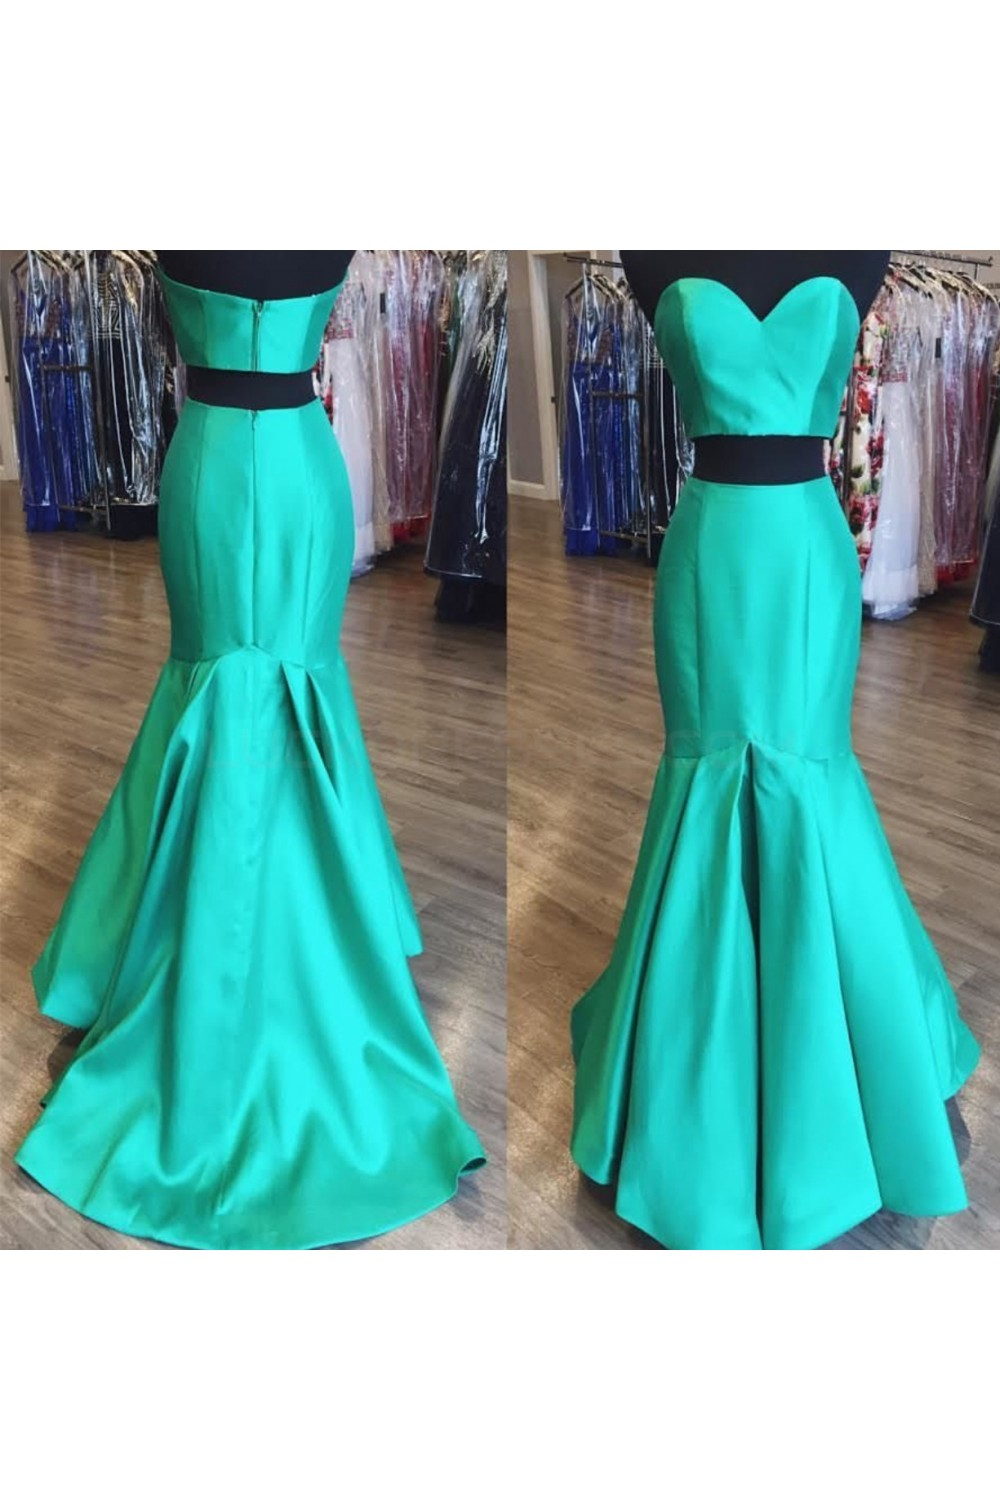 Mermaid Sweetheart Two Pieces Prom Formal Evening Party Dresses 3021437